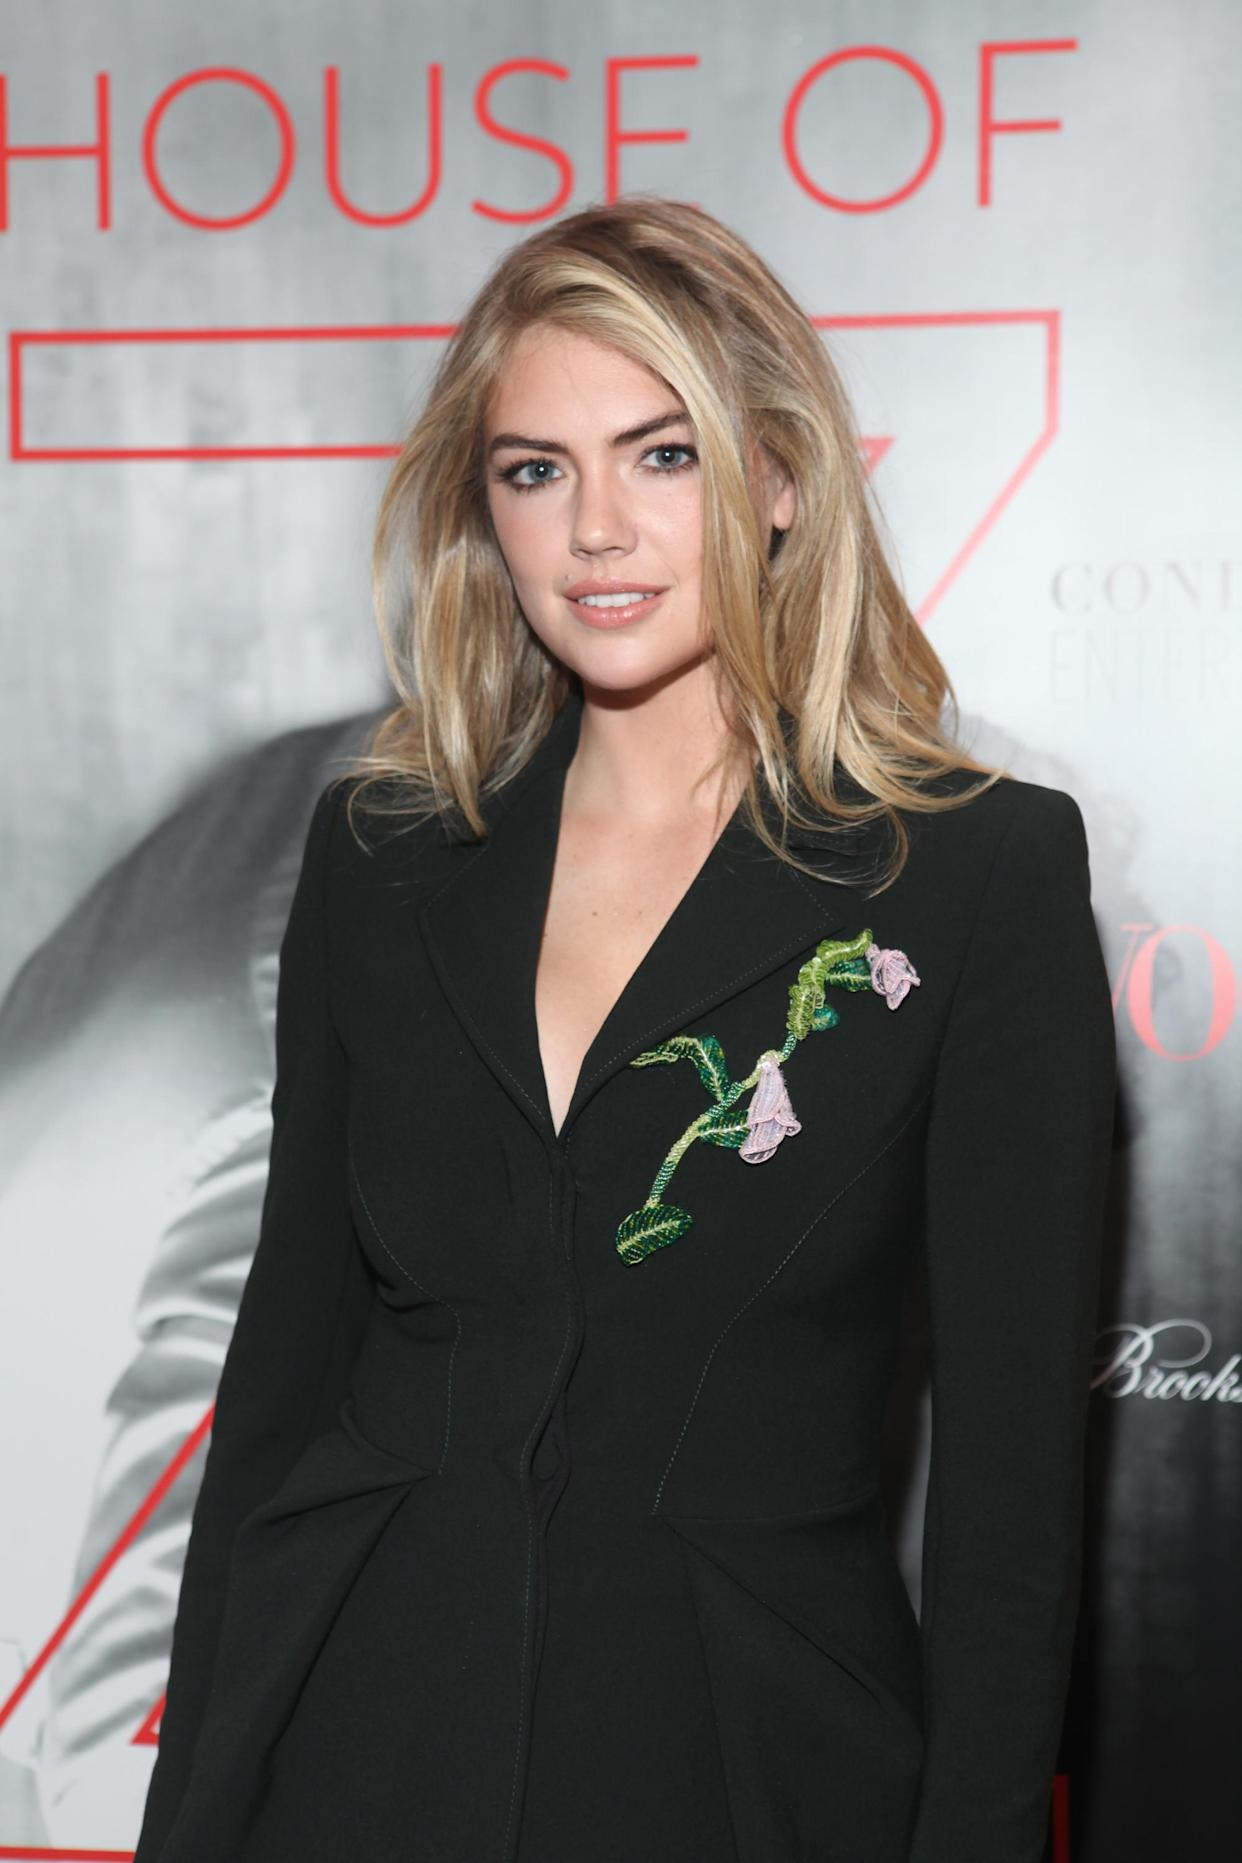 Model Kate Upton shares shocking details of alleged harassment by Guess co founder